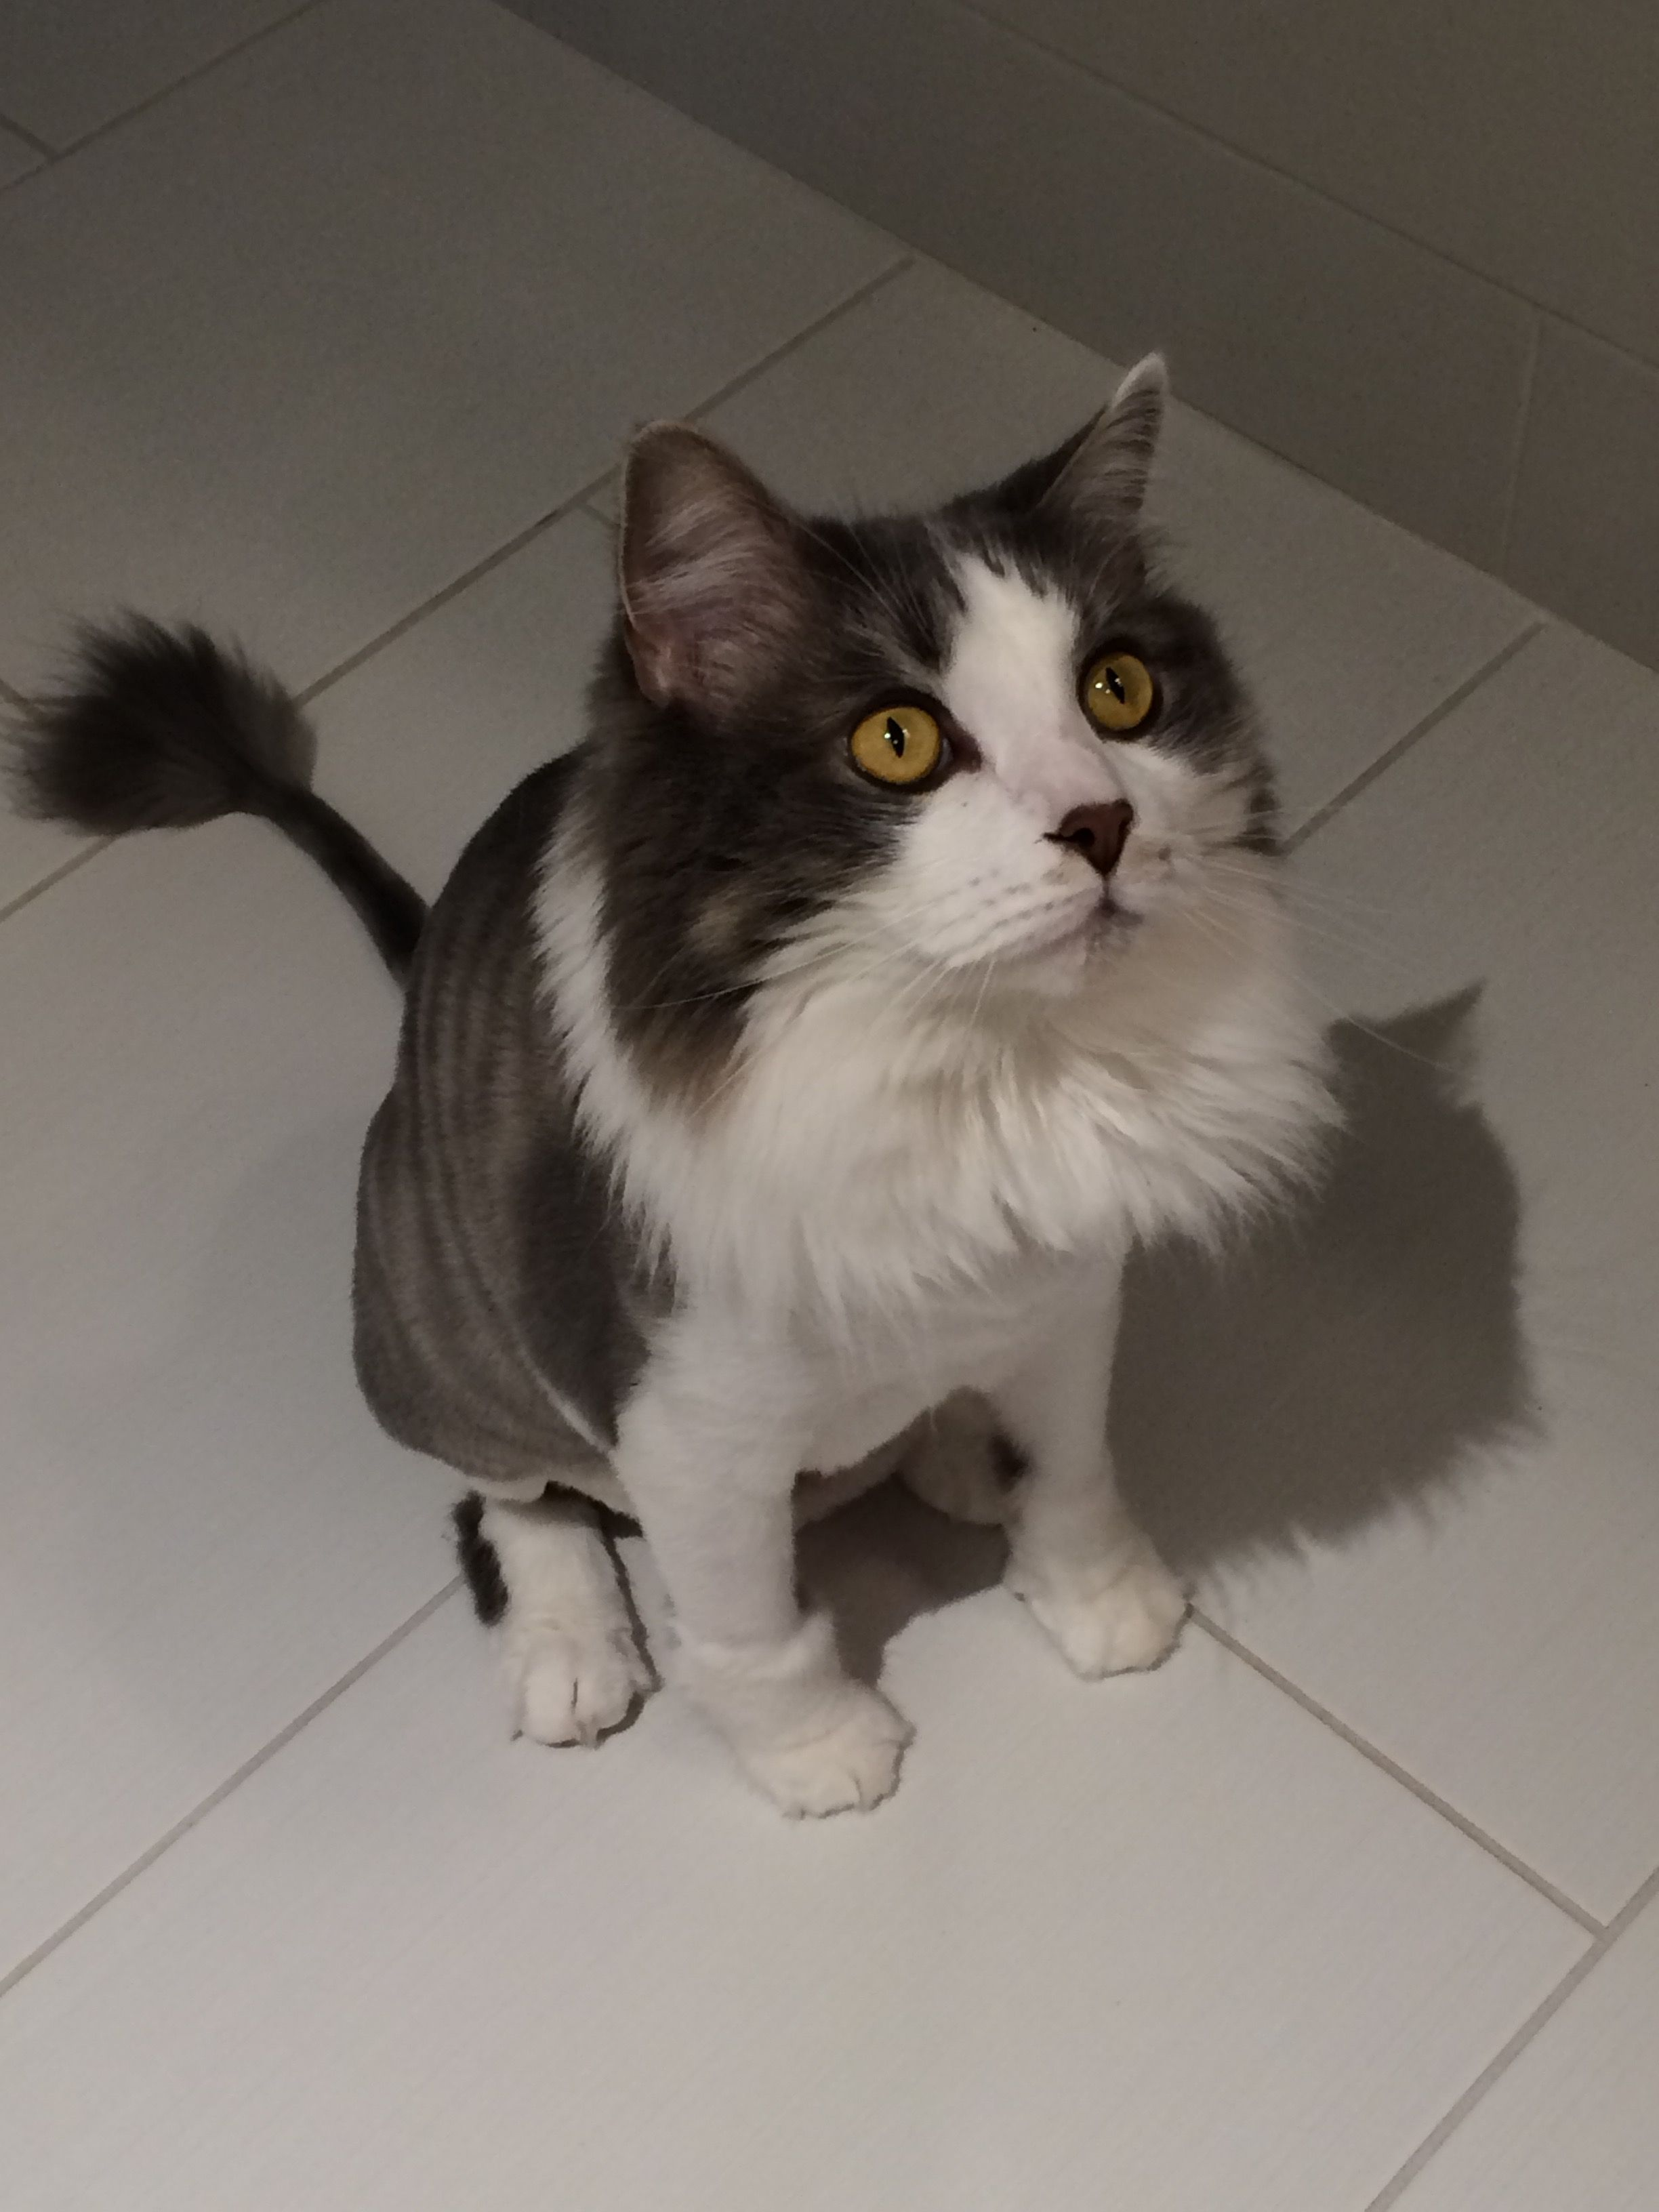 Sterlings Cute Cat Haircut Lions Cut Adorable Animals